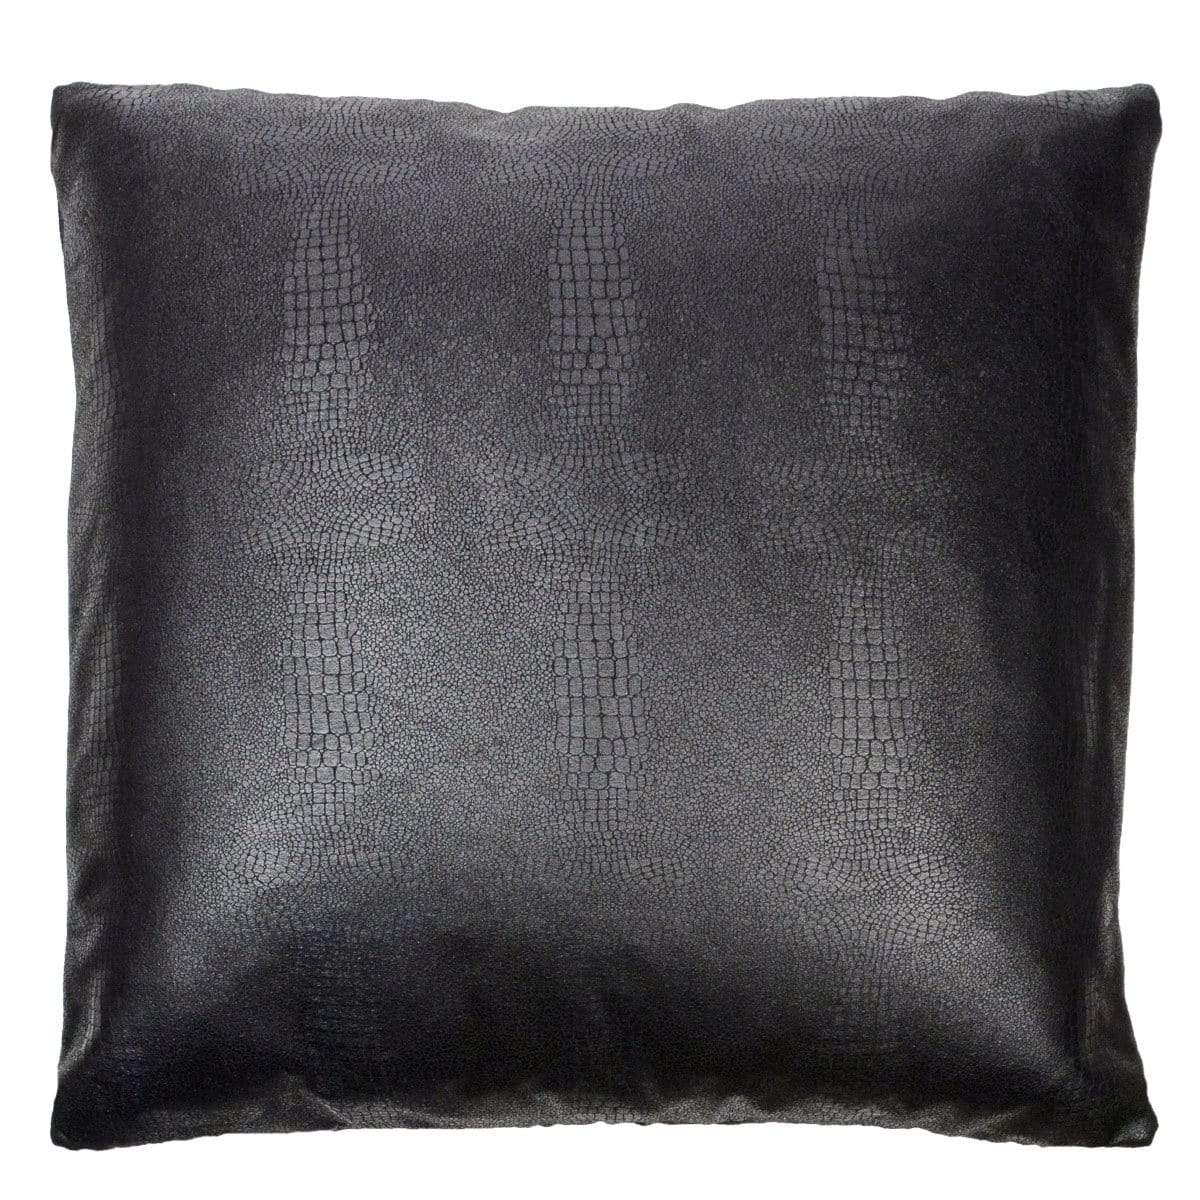 Pillow Sham - Outback Vegan Leather